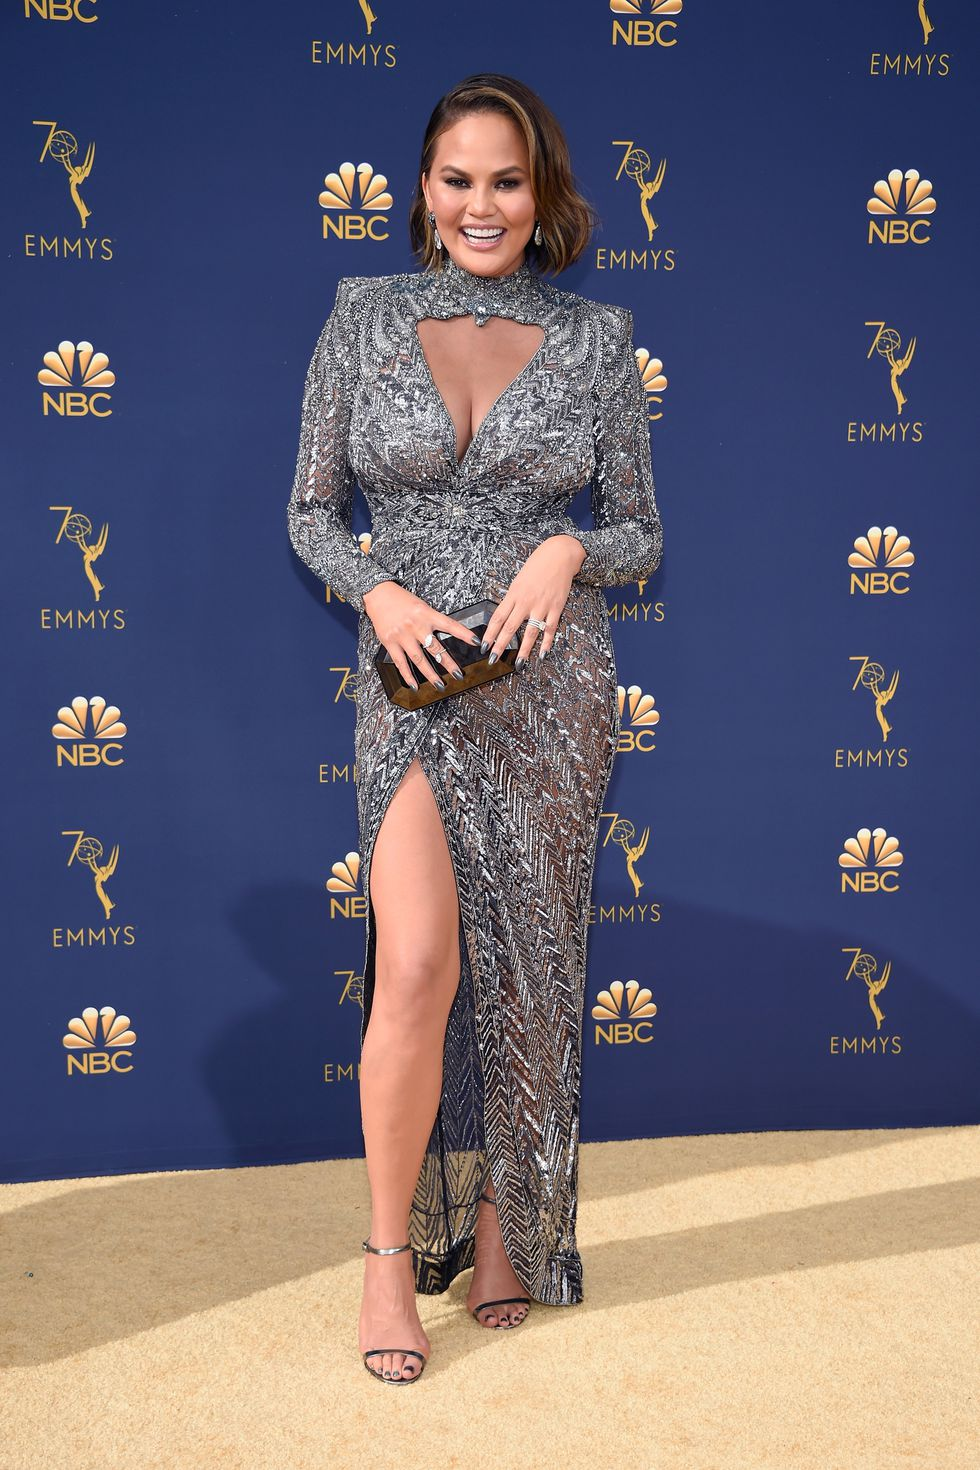 Our Favourite Red Carpet Looks from the 2018 Emmy Awards